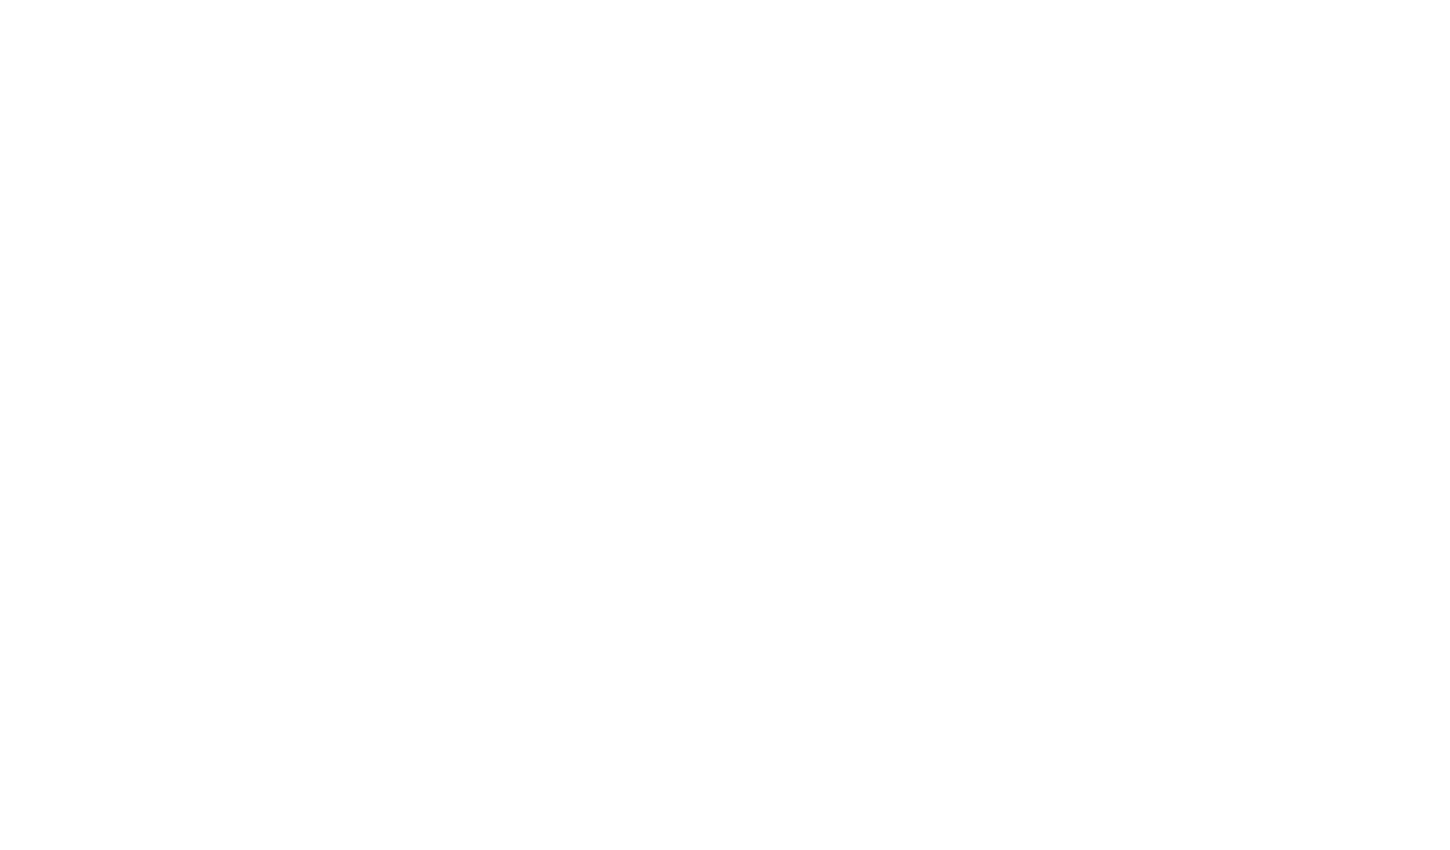 VistaMebel